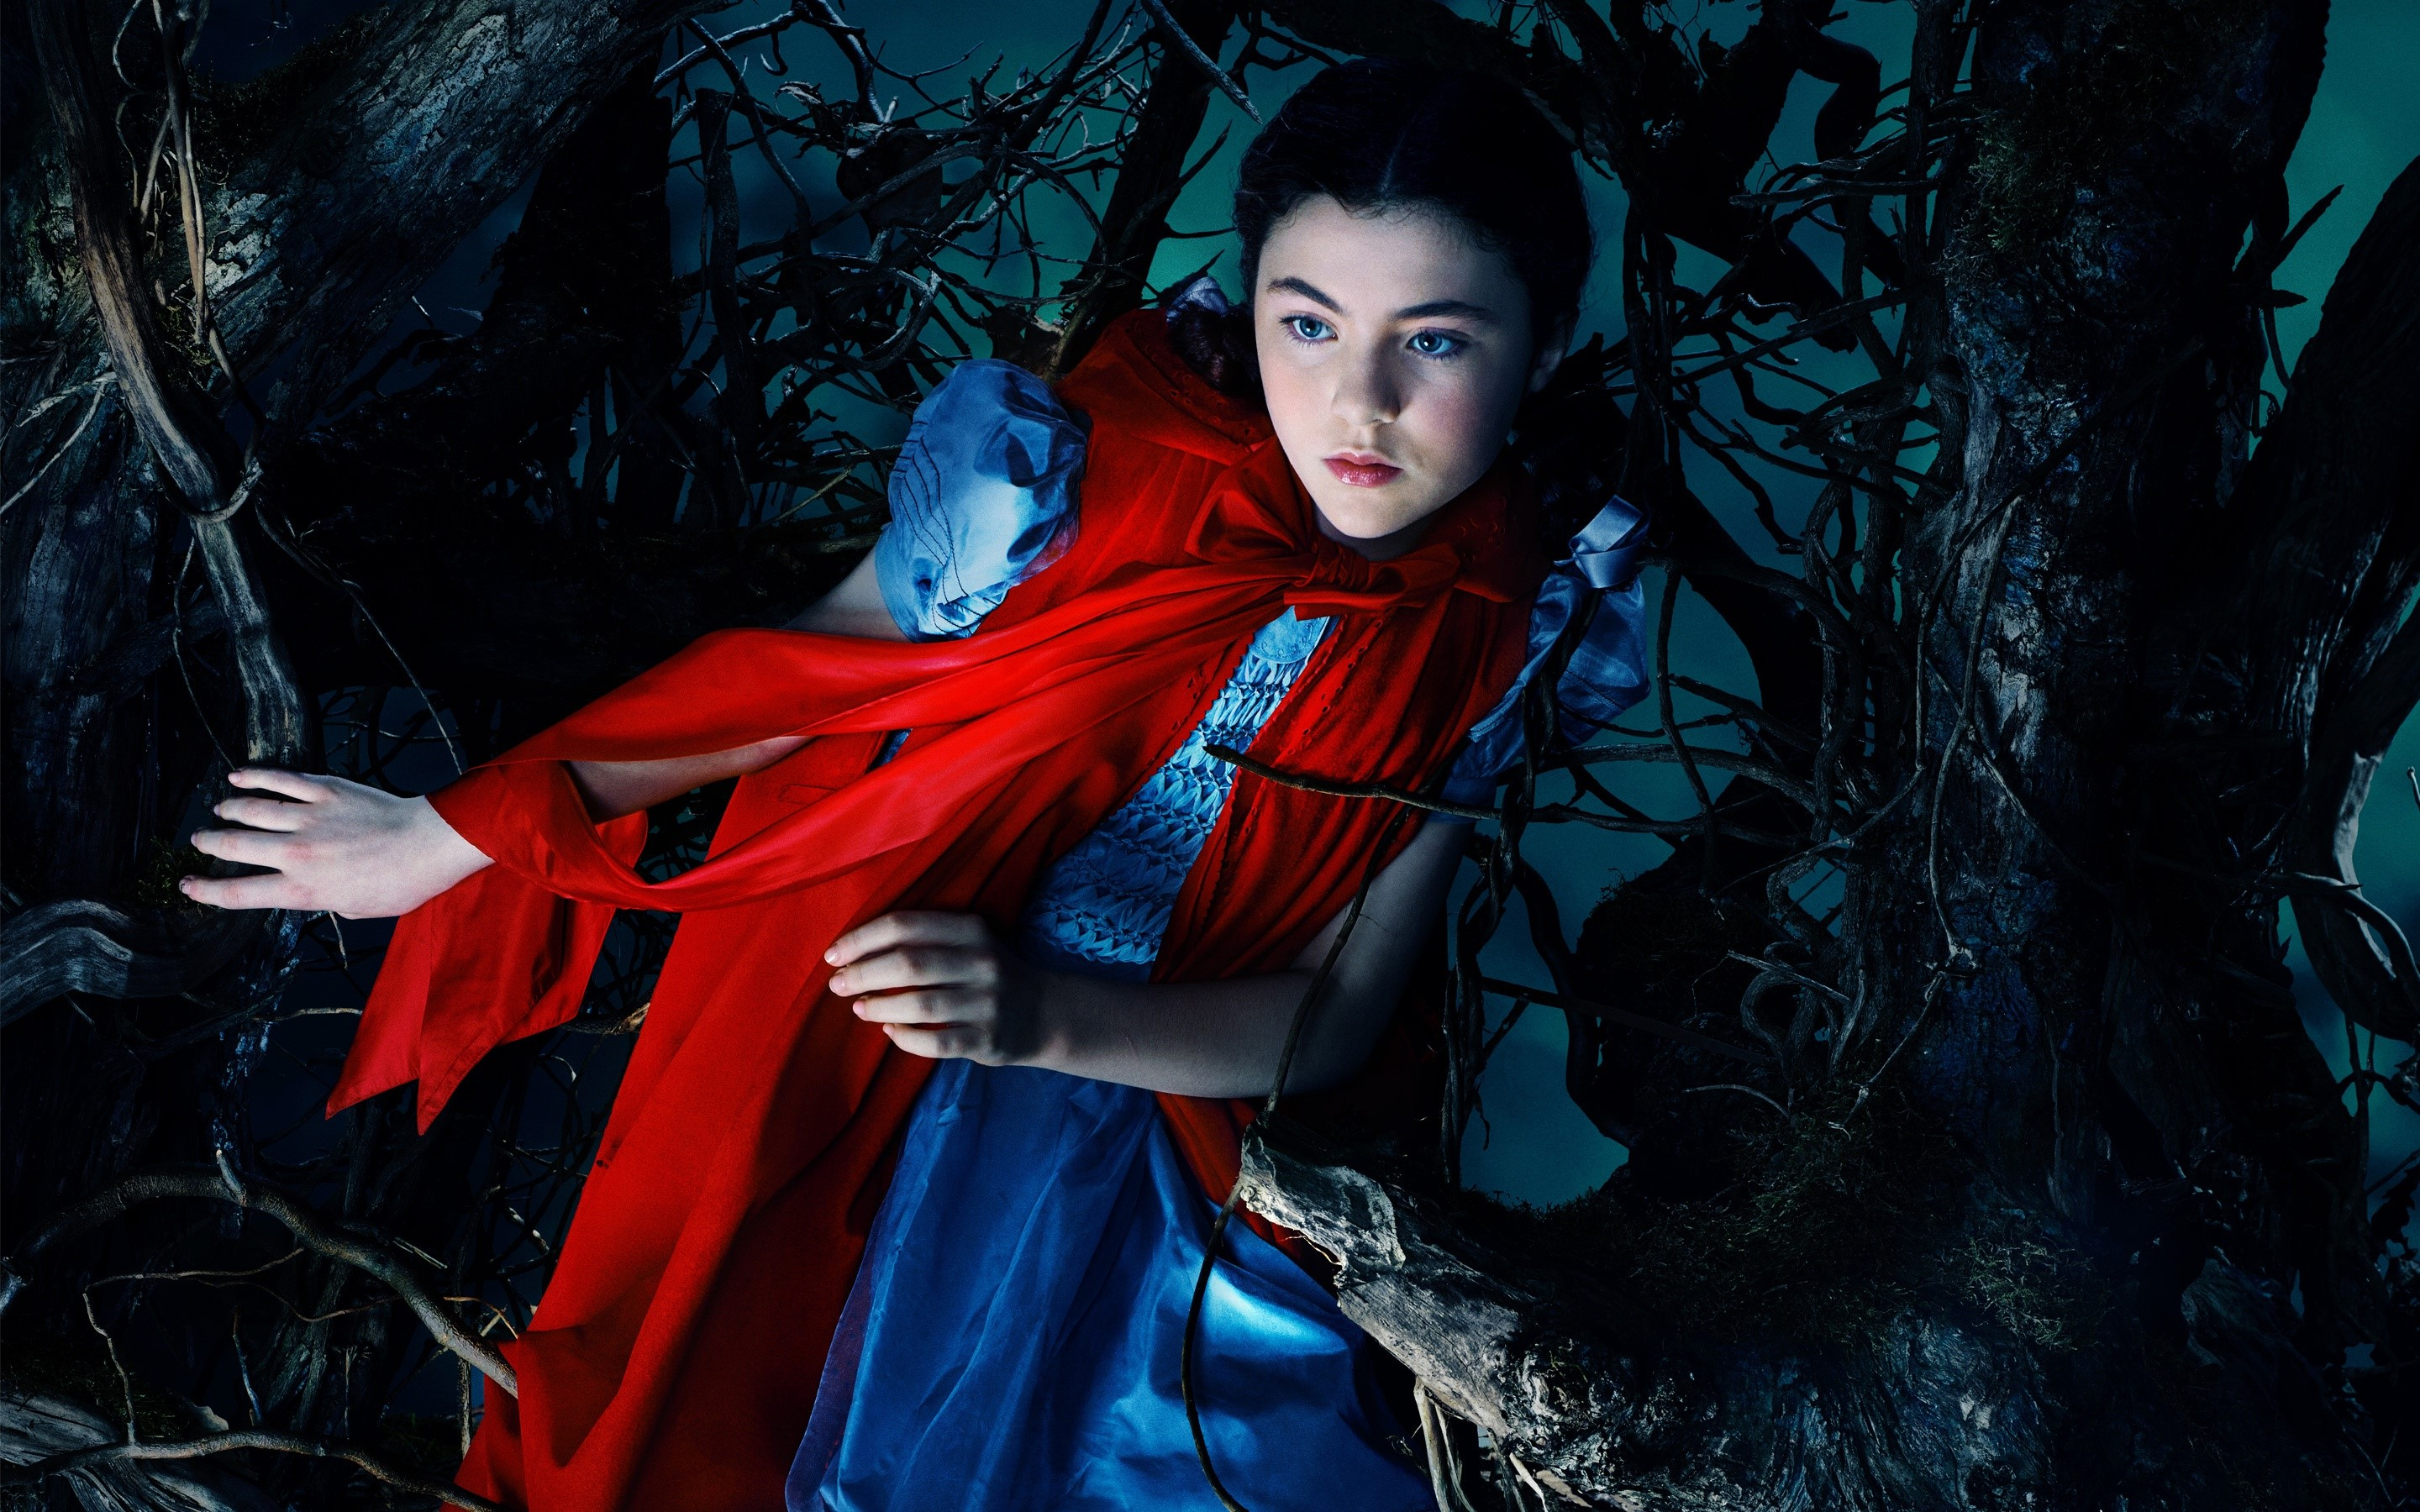 Fondos de pantalla Little red riding hood en Into the woods